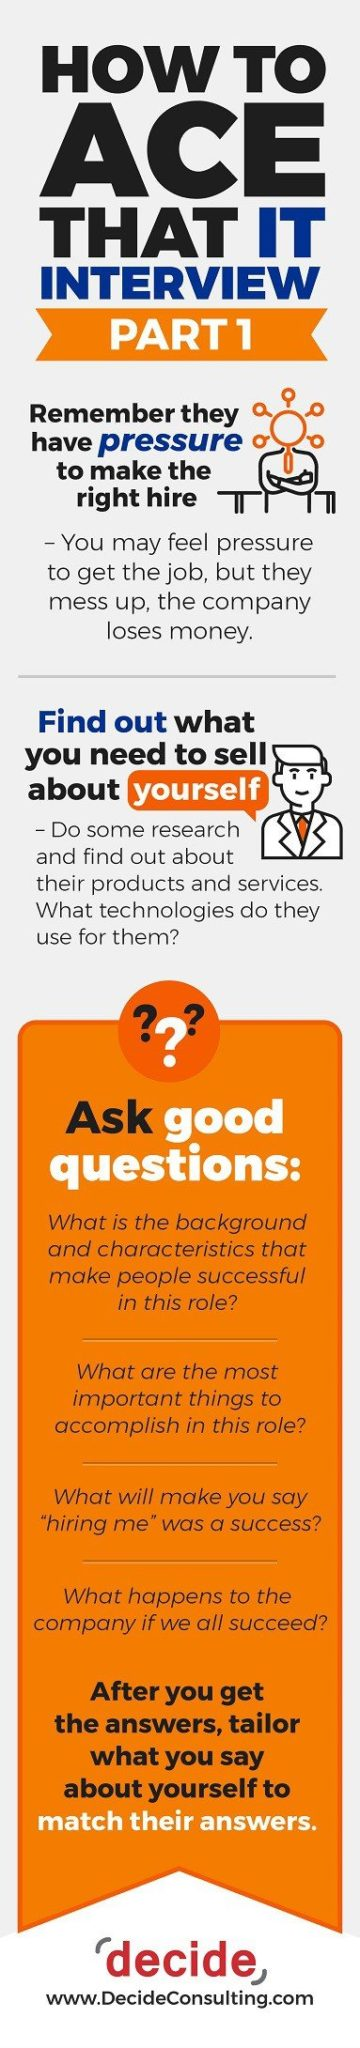 Ace That IT Interview Part 1 [INFOGRAPHIC]